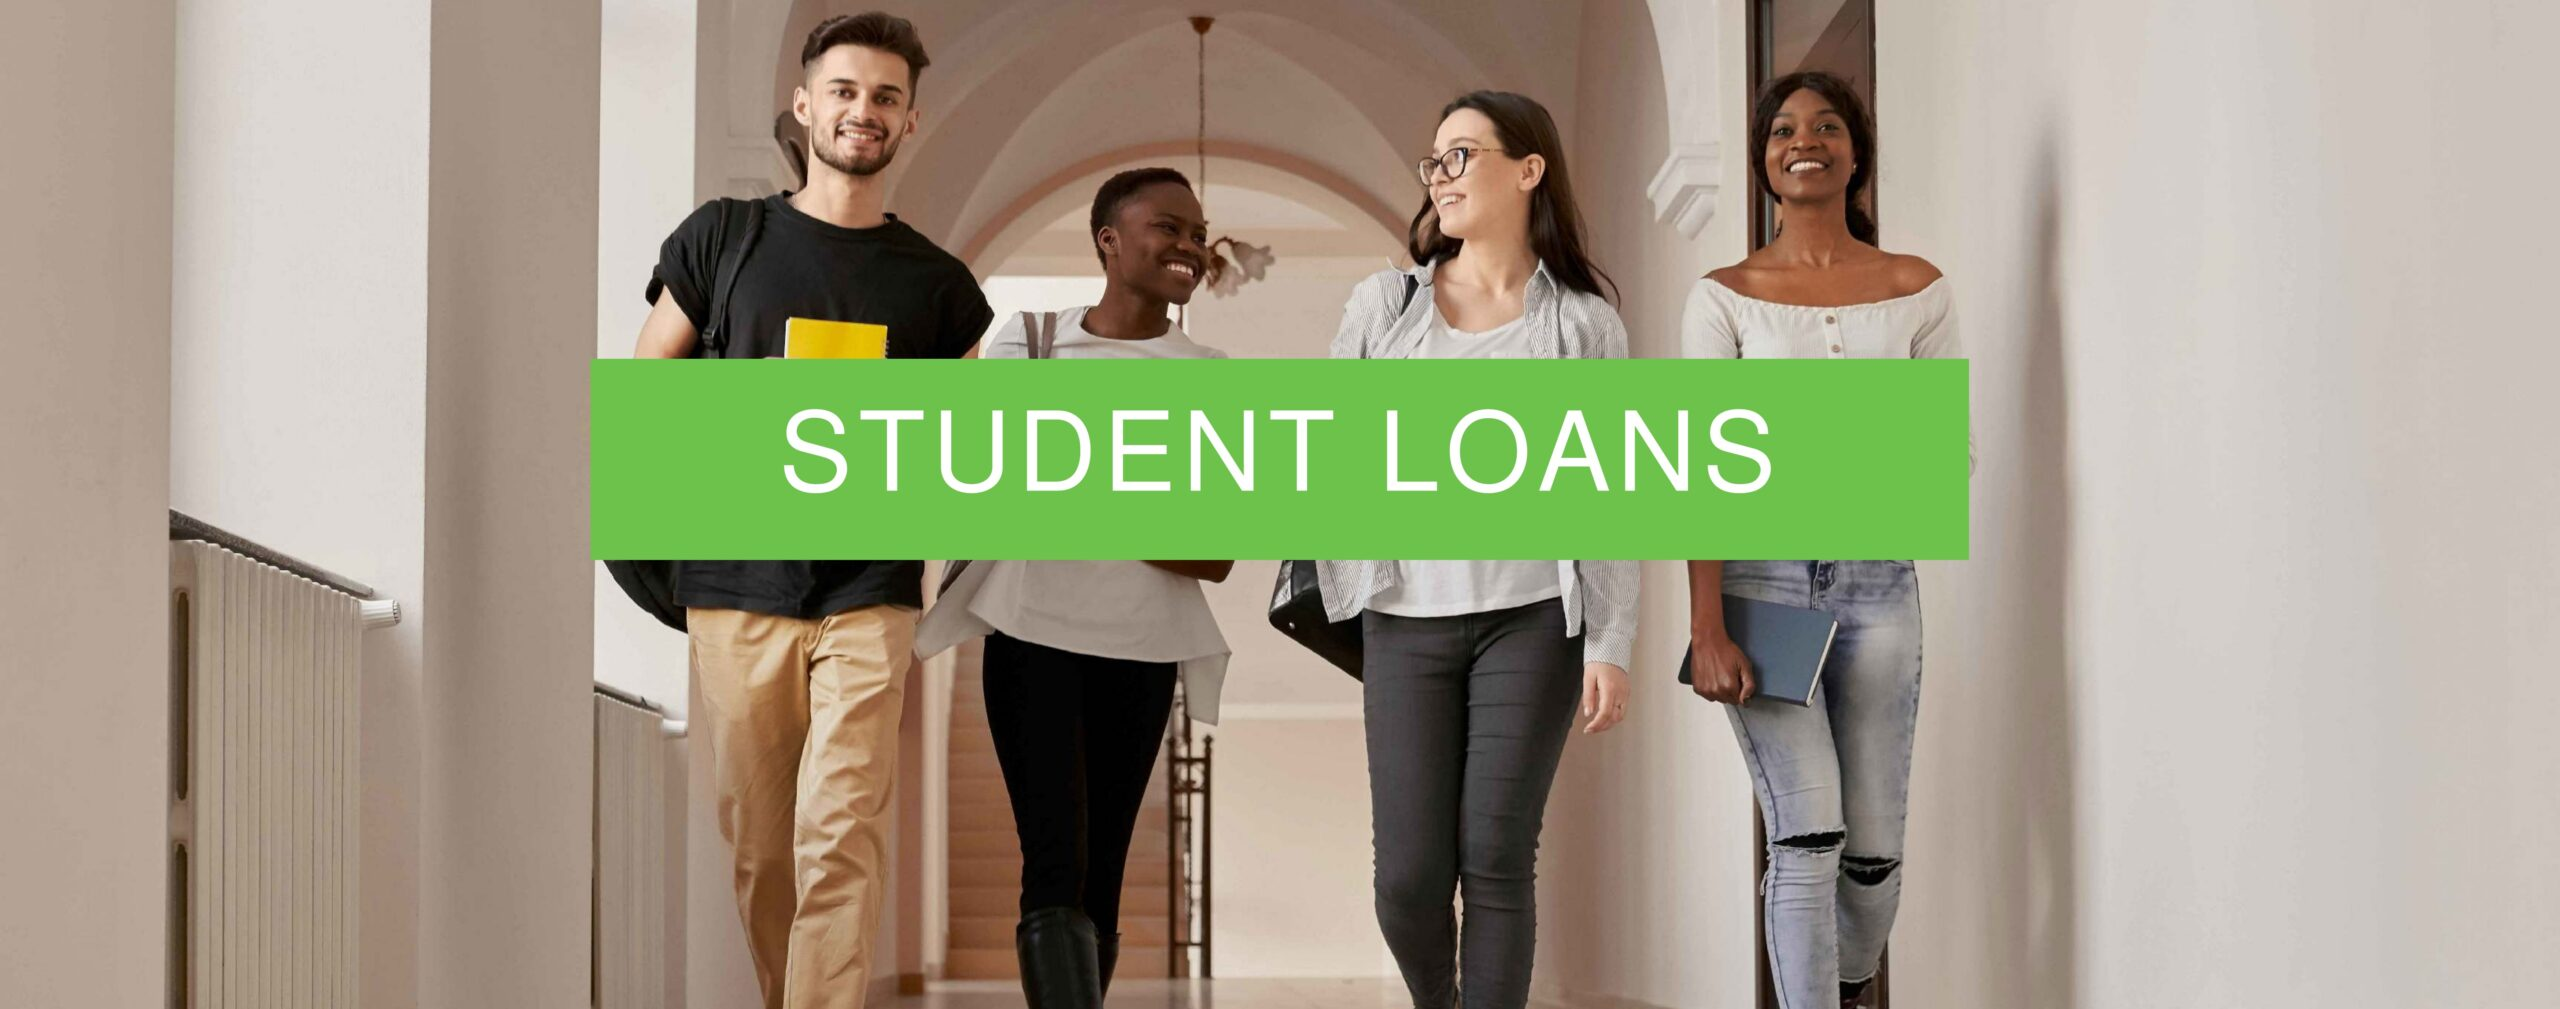 Student Loan Page